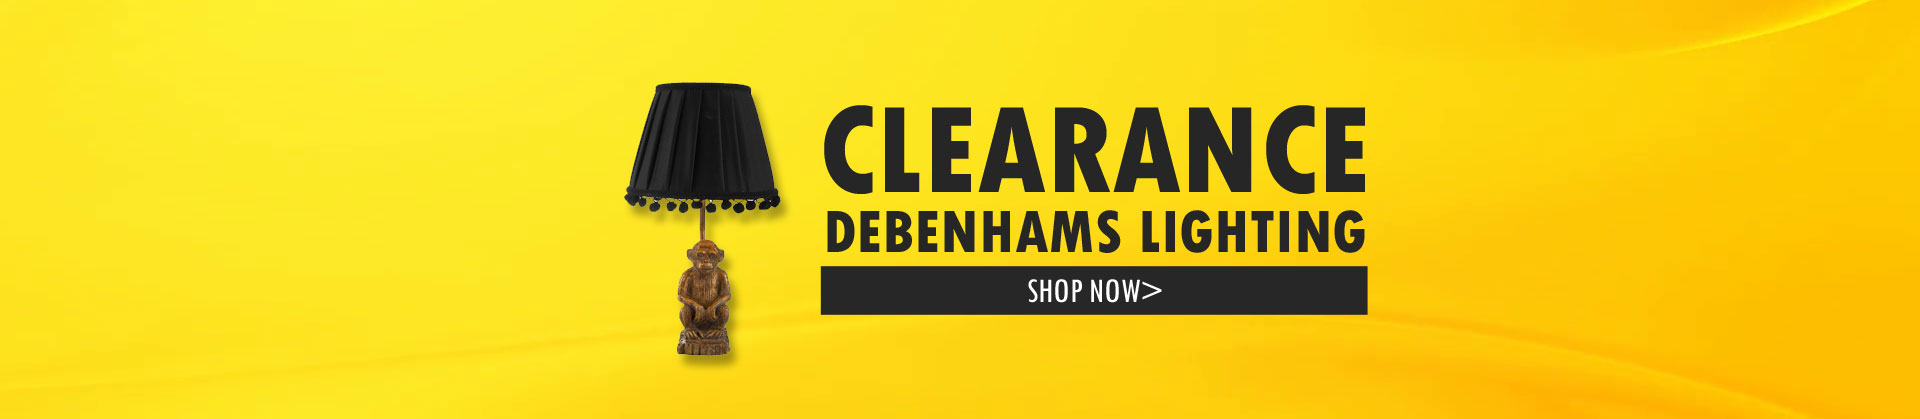 Clearance on Debenhams Lighting